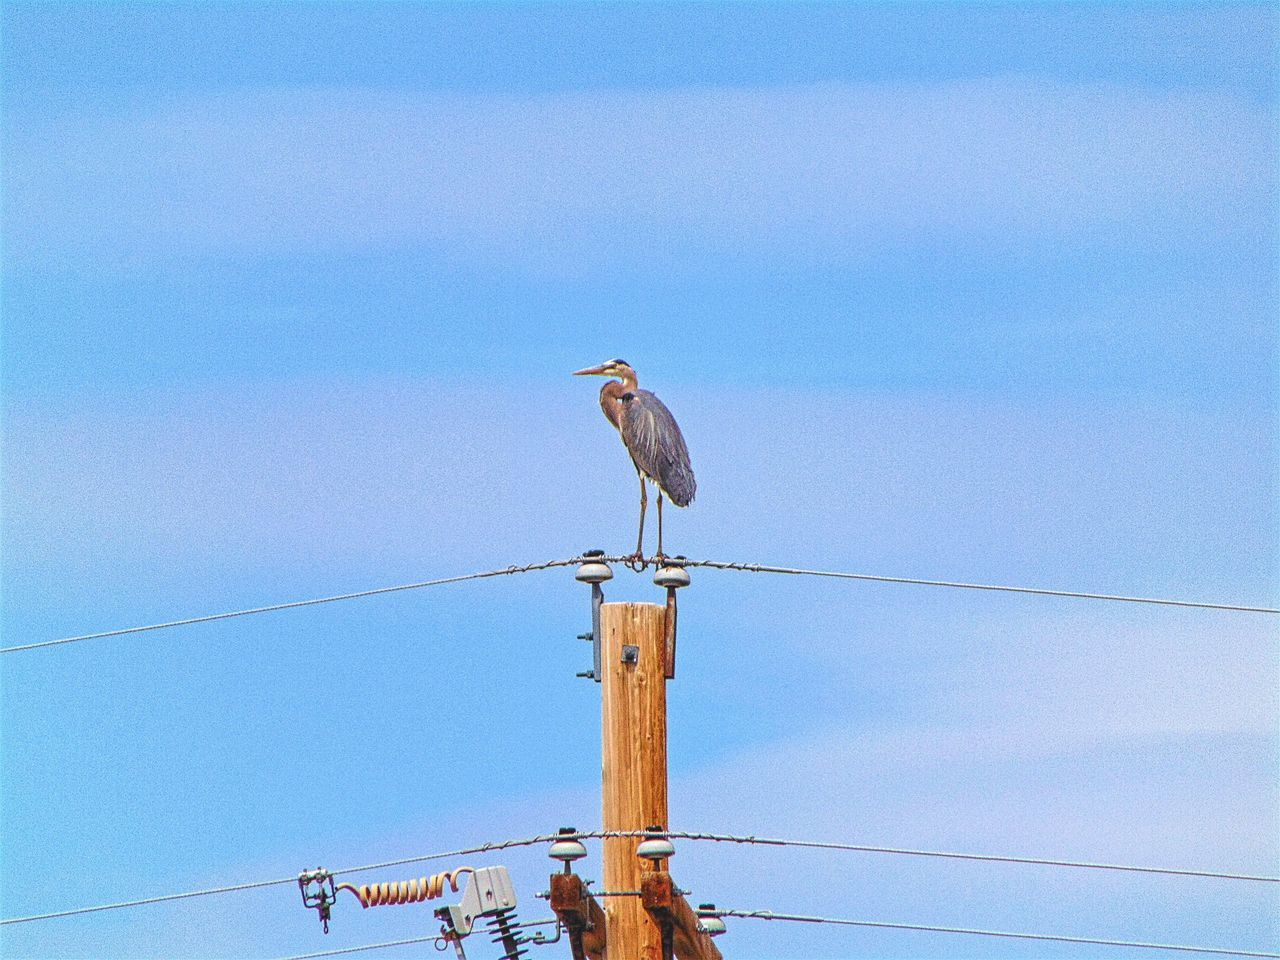 bird, animals in the wild, perching, animal themes, one animal, animal wildlife, cable, low angle view, day, no people, outdoors, nature, wooden post, gray heron, electricity pylon, sky